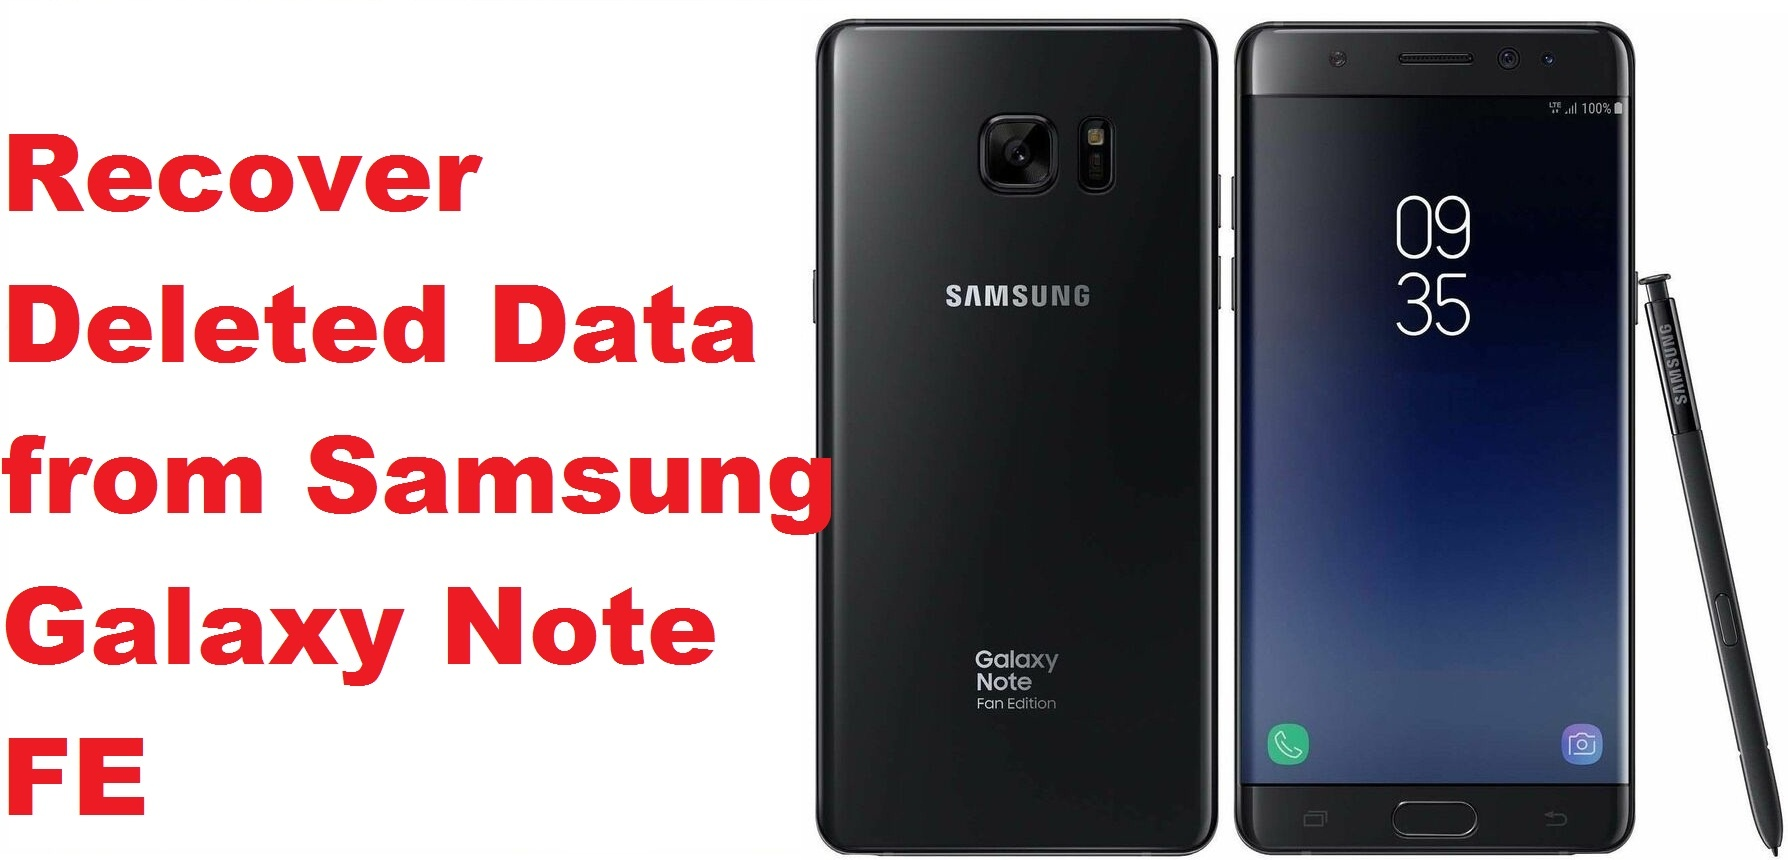 recover deleted data from Samsung Galaxy Note FE